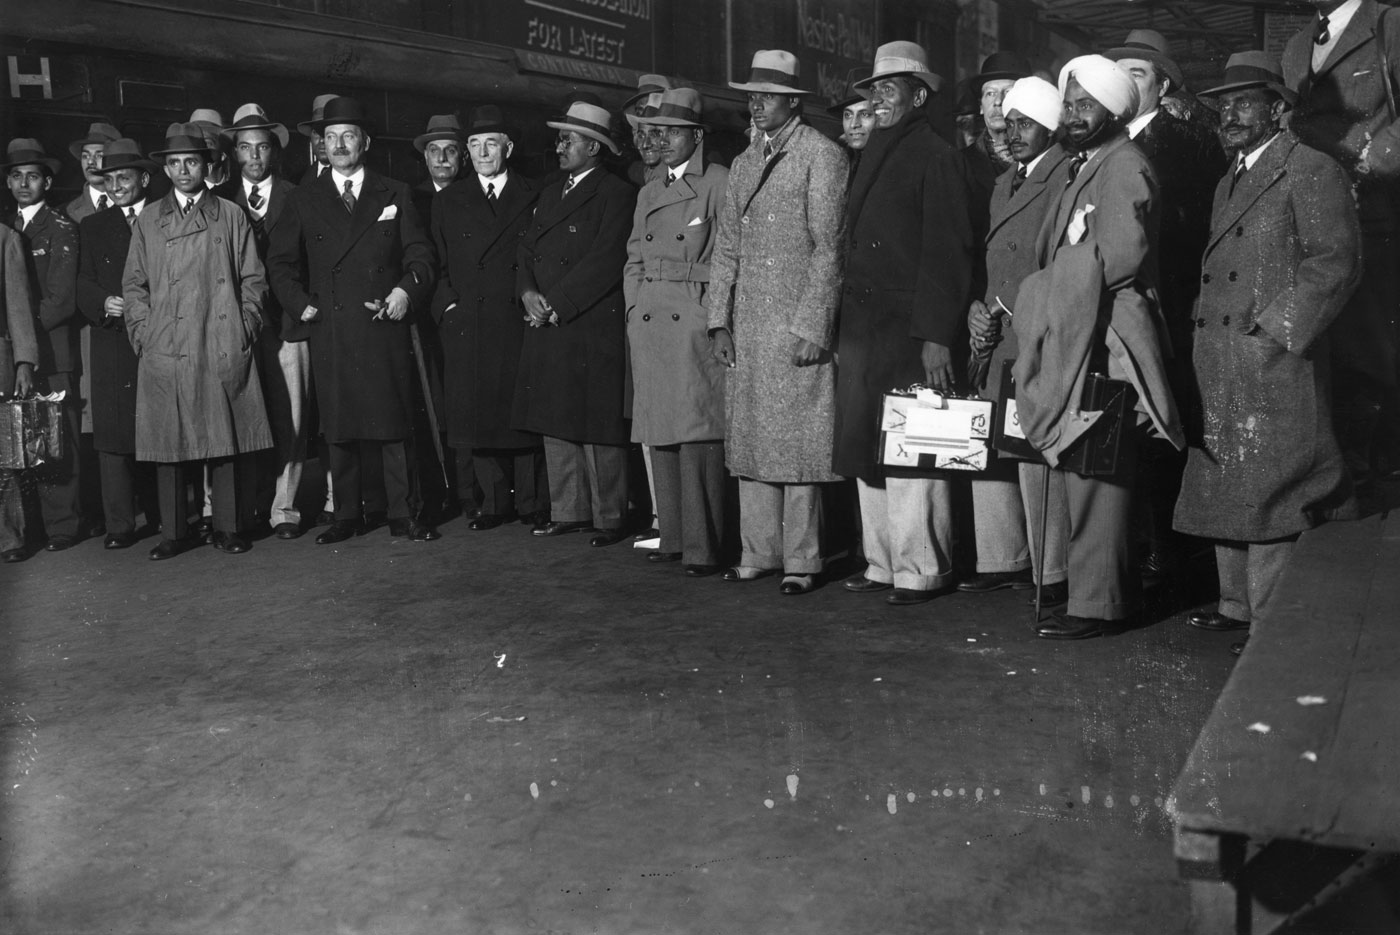 The 1932 All-India side arrive at Victoria Station